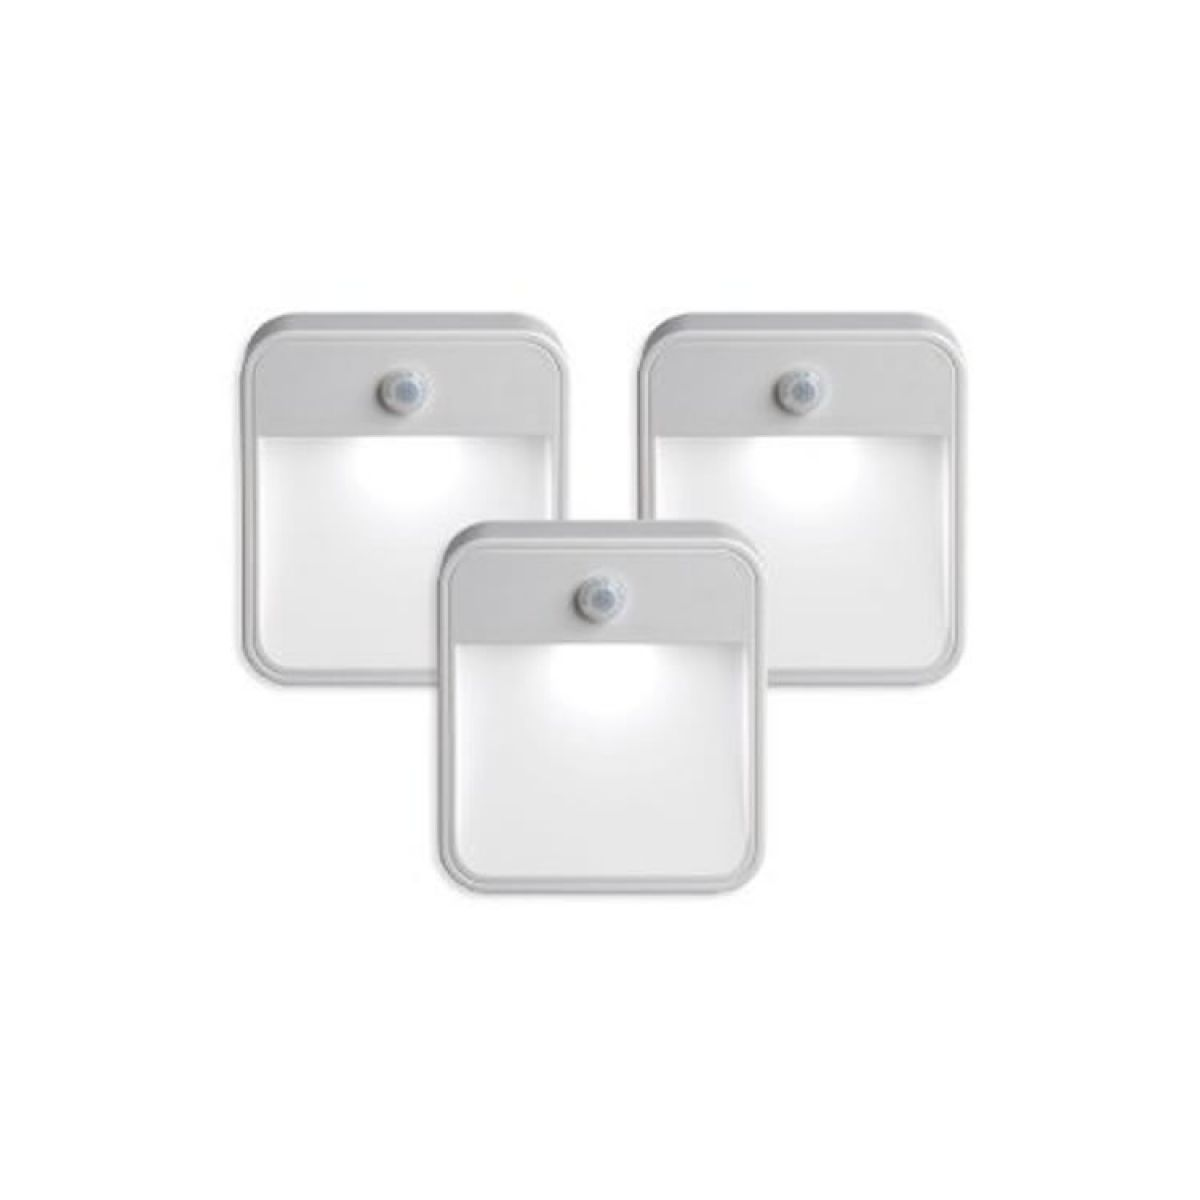 Bathroom Lighting Motion Sensor: Unique Lighting Motion Sensor LED Light (3 Pack) : UK